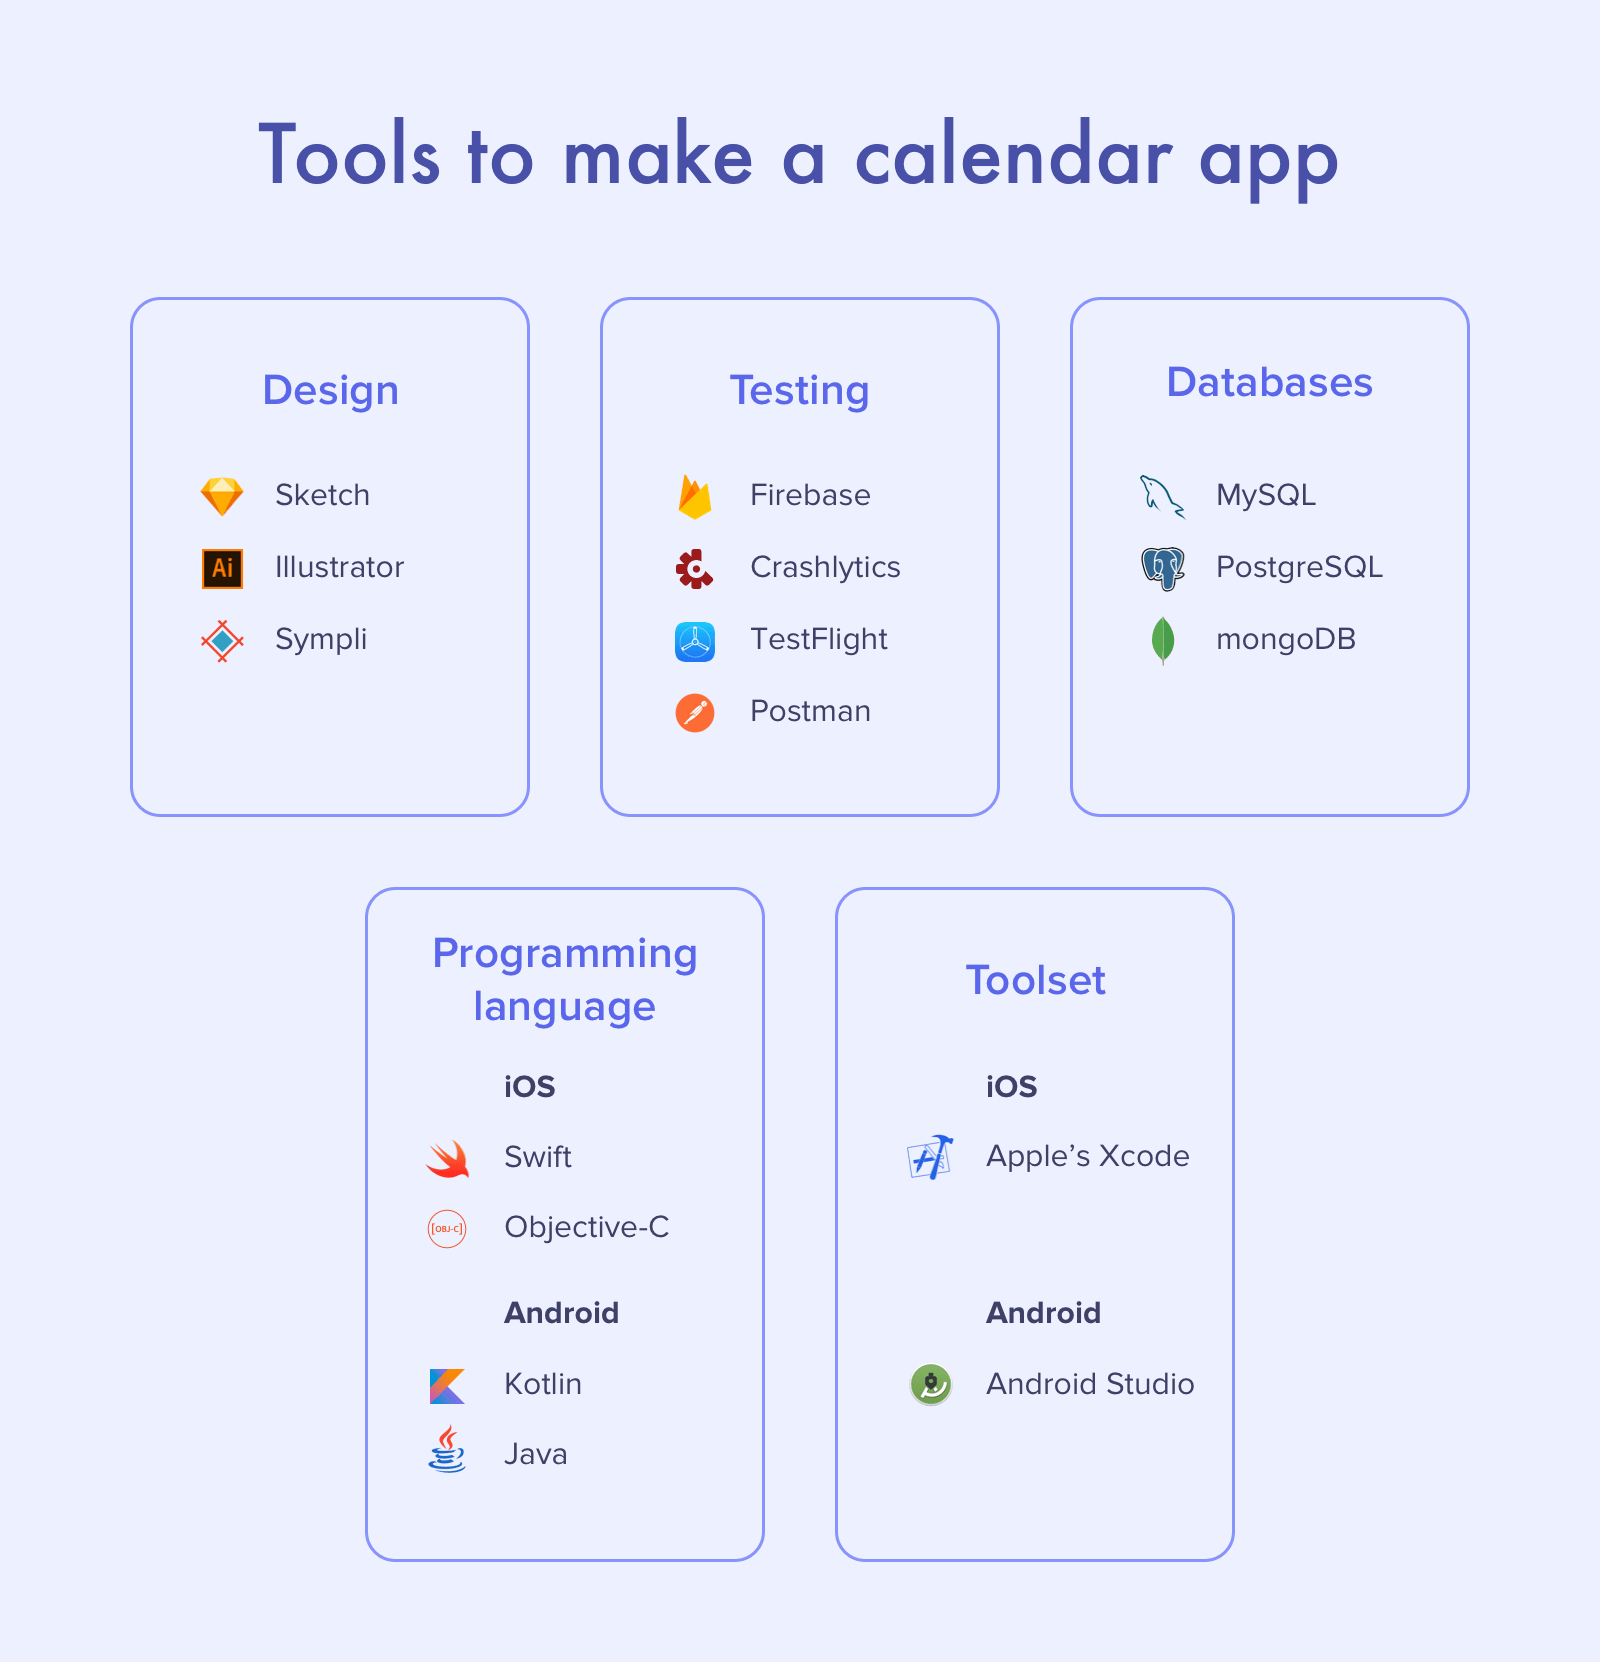 Technologies to create a calendar app